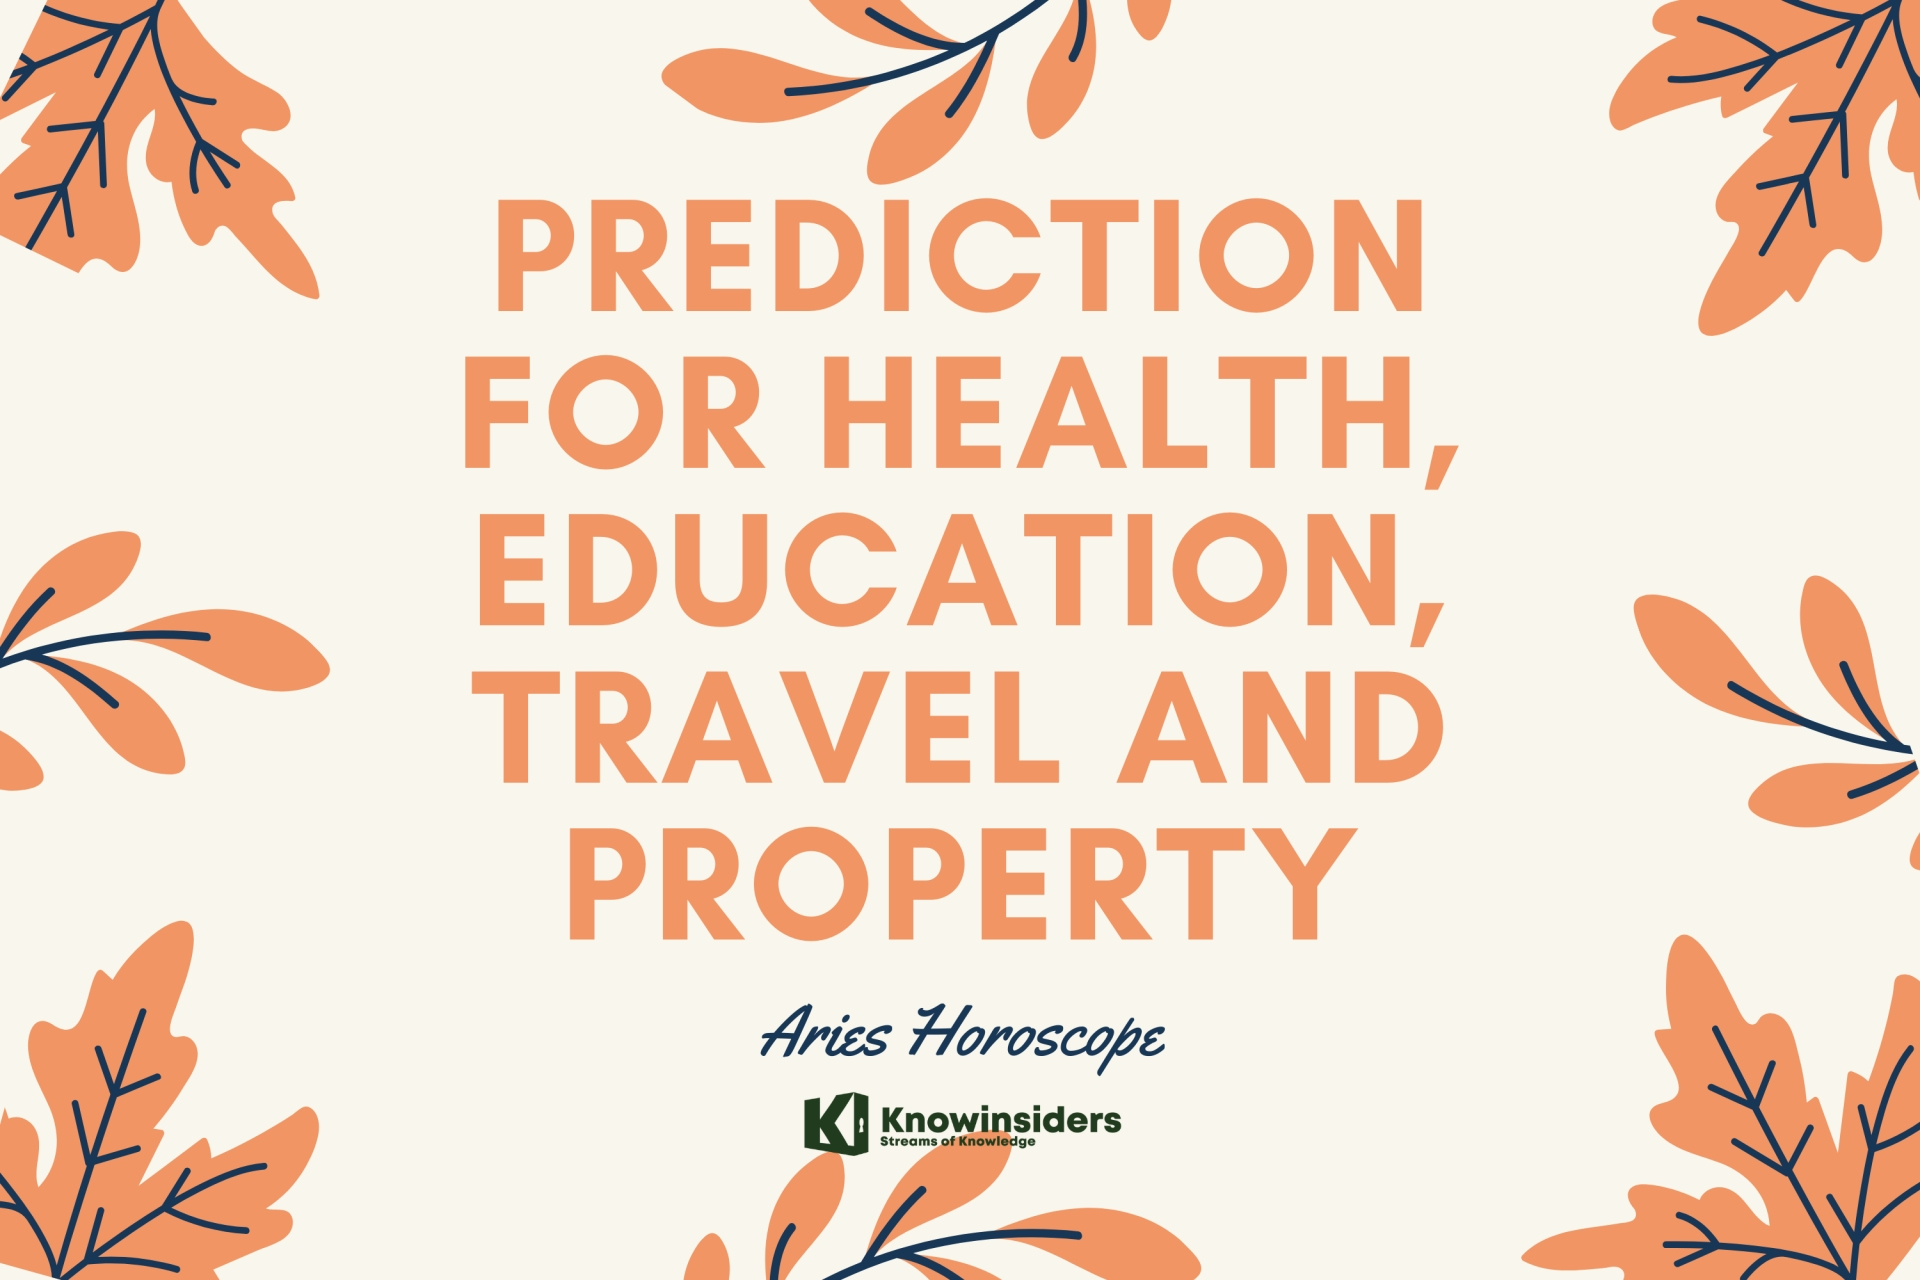 Aries Yearly Horoscope 2022: Prediction For Health, Education, Travel and Property